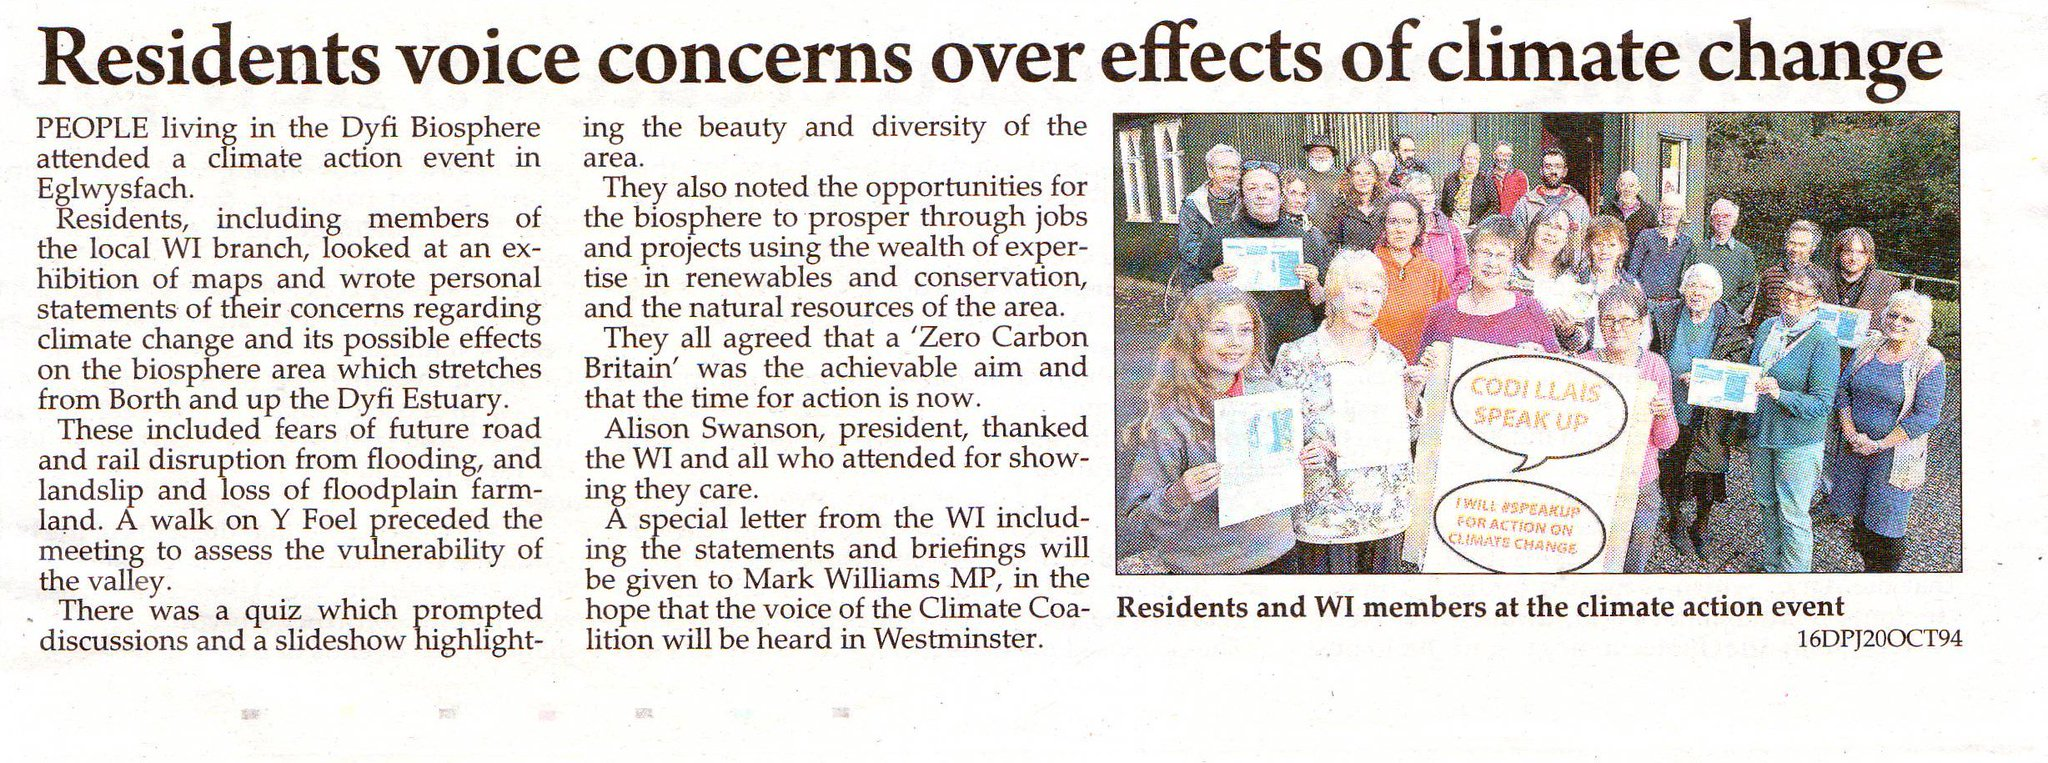 Read the @CambrianNews article about the fantastic #SpeakUp event in Ceredigion here! Will @mark4ceredigion #SpeakUp for #climatechange? 🌏 https://t.co/ATm3u6pfq5